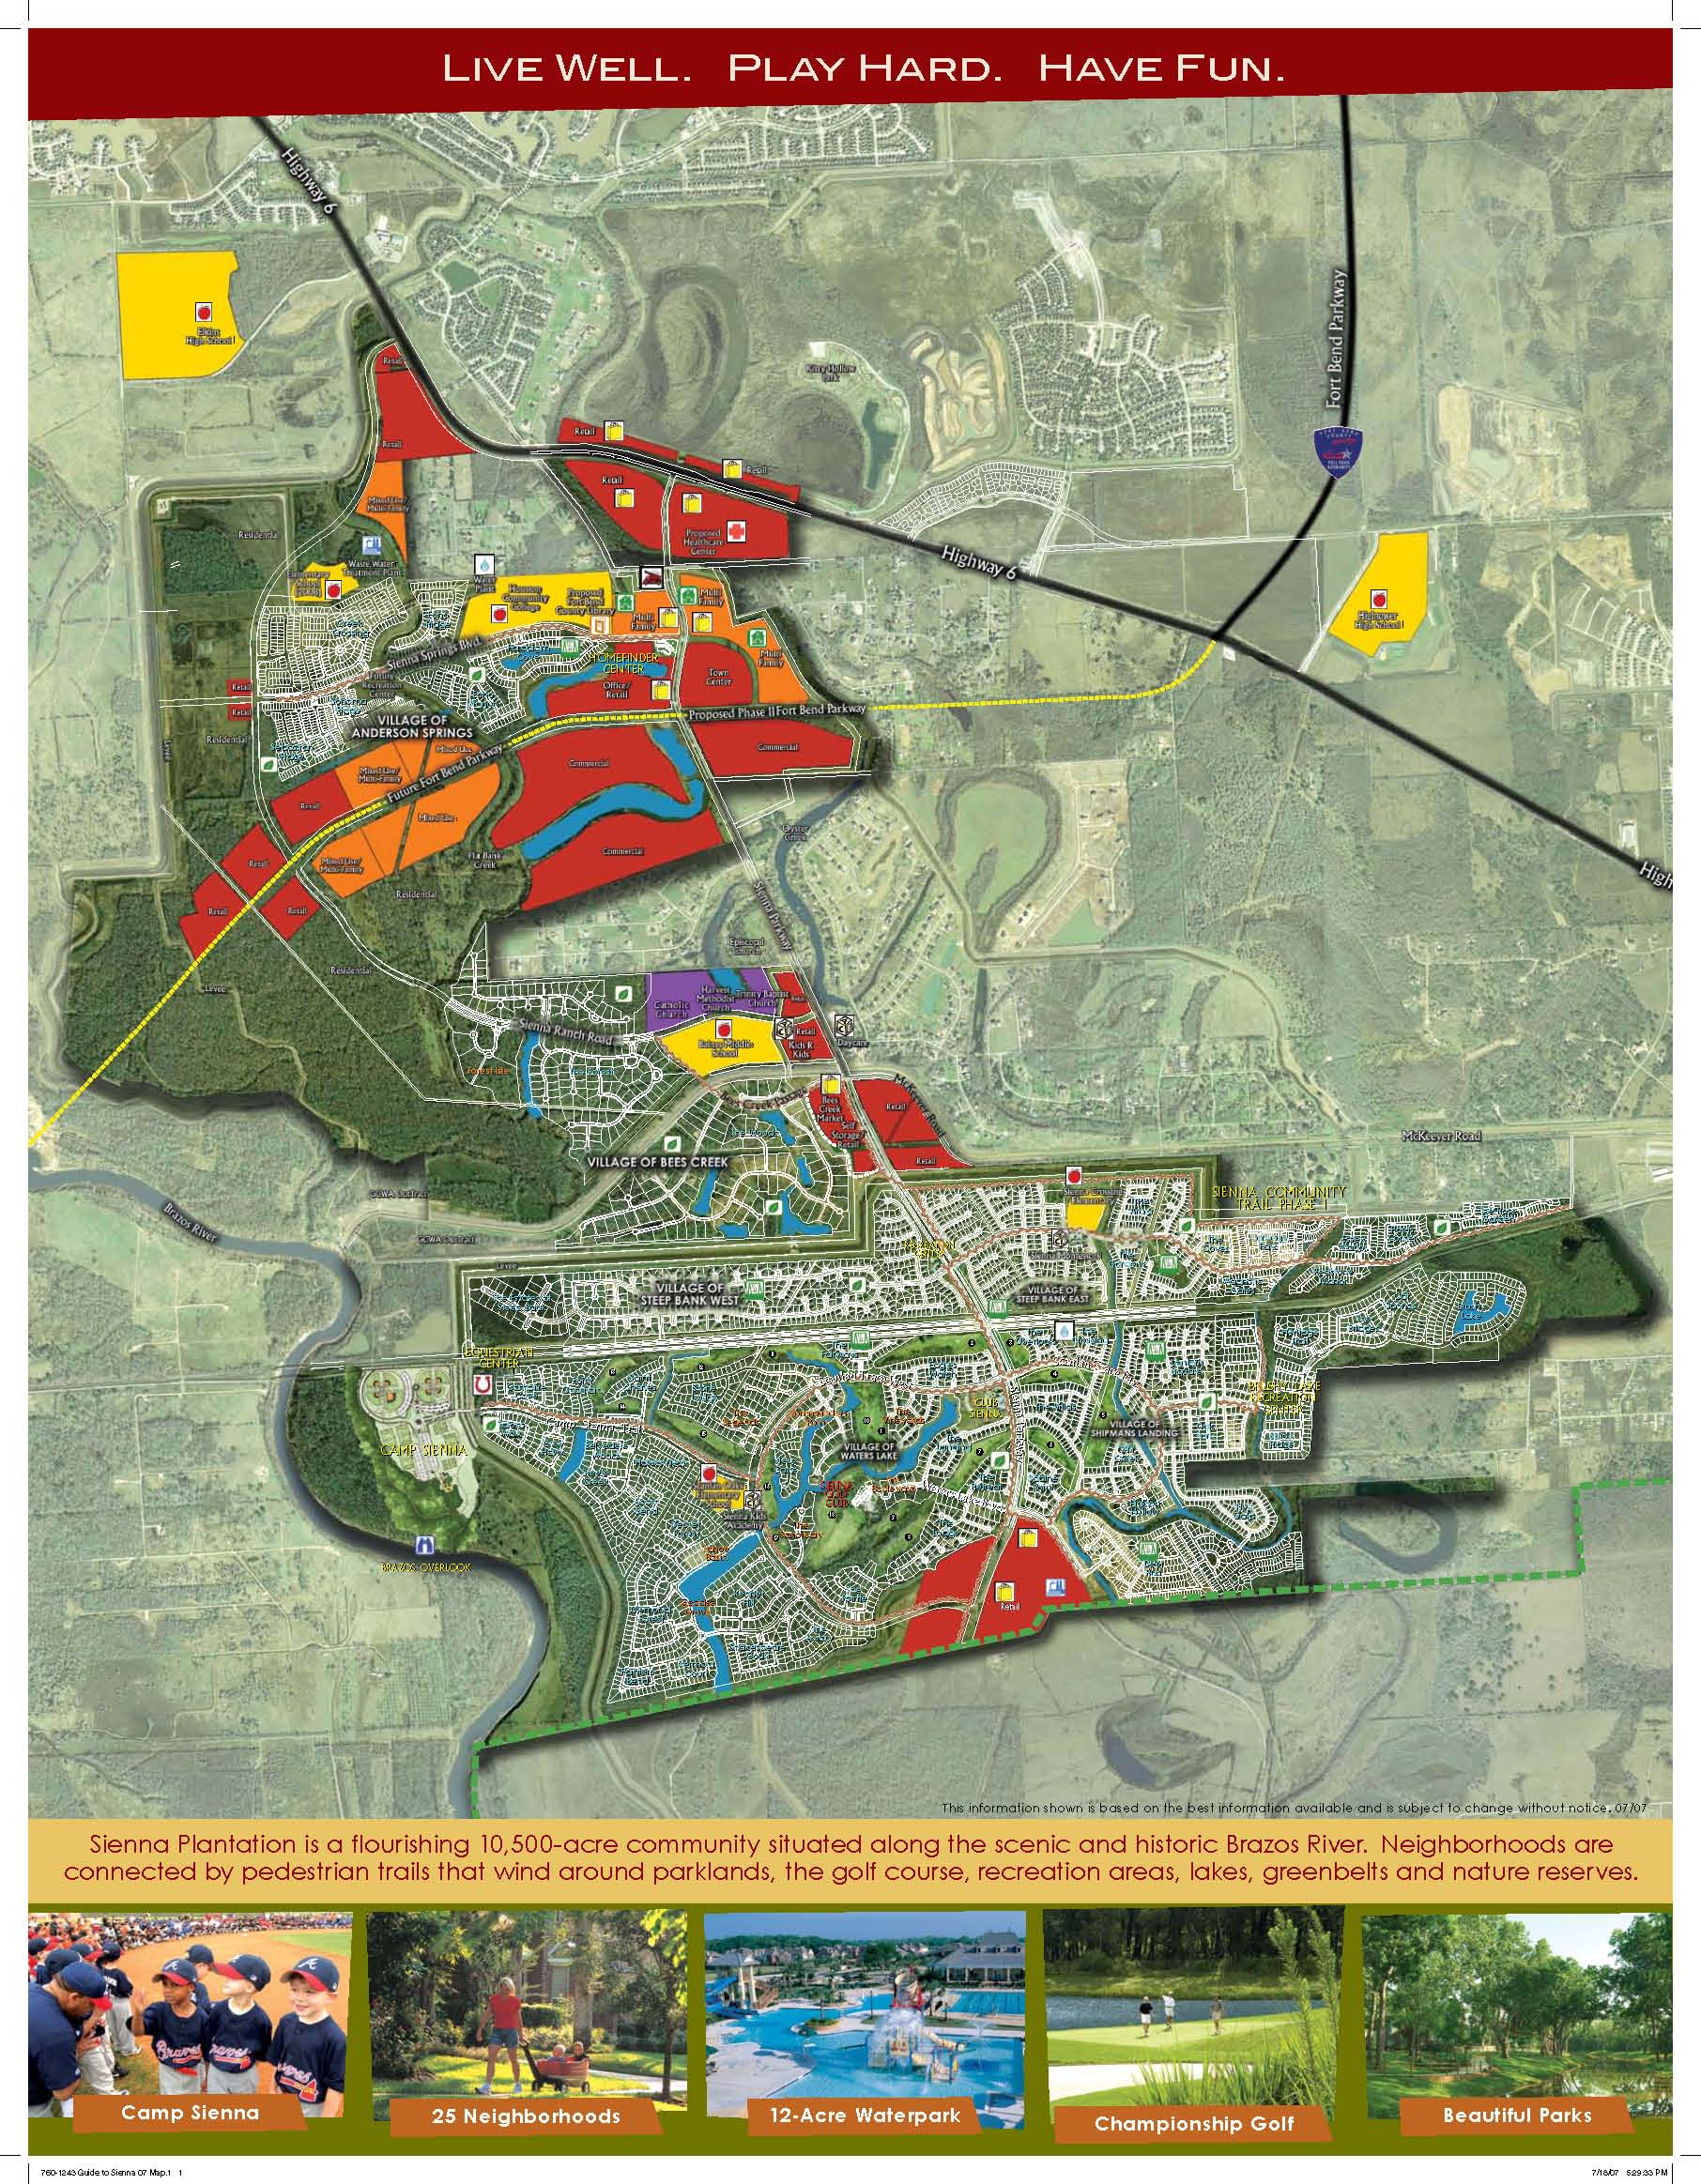 A map of Sienna Plantation Click for